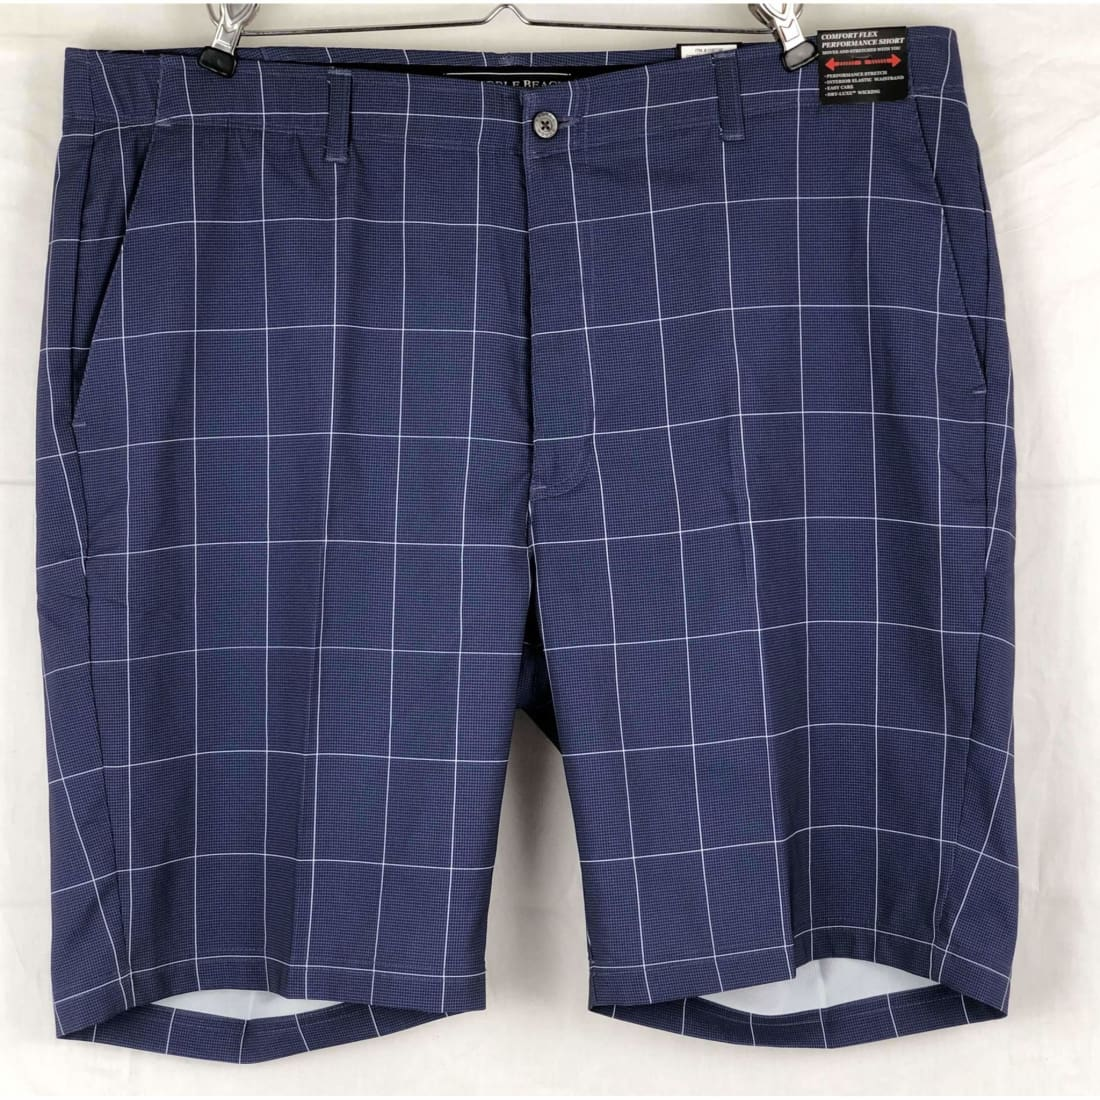 Pebble Beach Mens Dry-Luxe Performance Comfort Waist Short 40 / Classic Fit / Navy Plaid Shorts